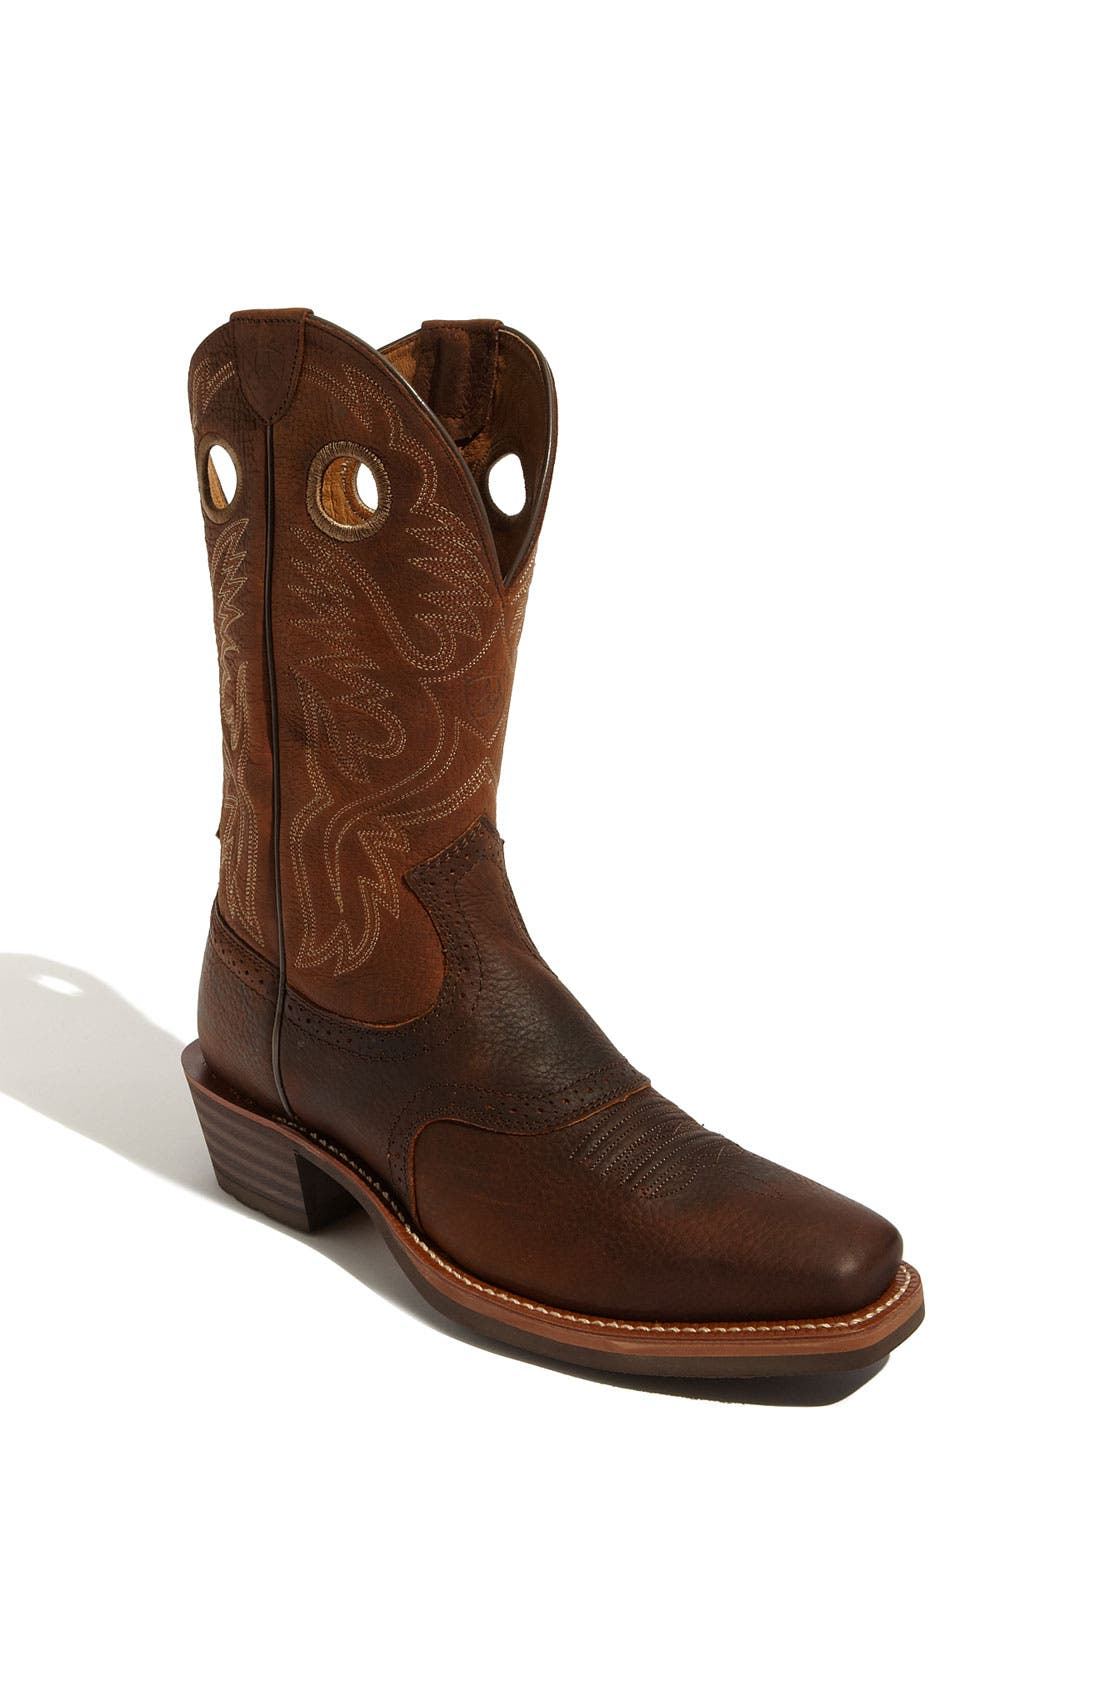 ARIAT 'Heritage Roughstock' Boot, Main, color, OILED BROWN